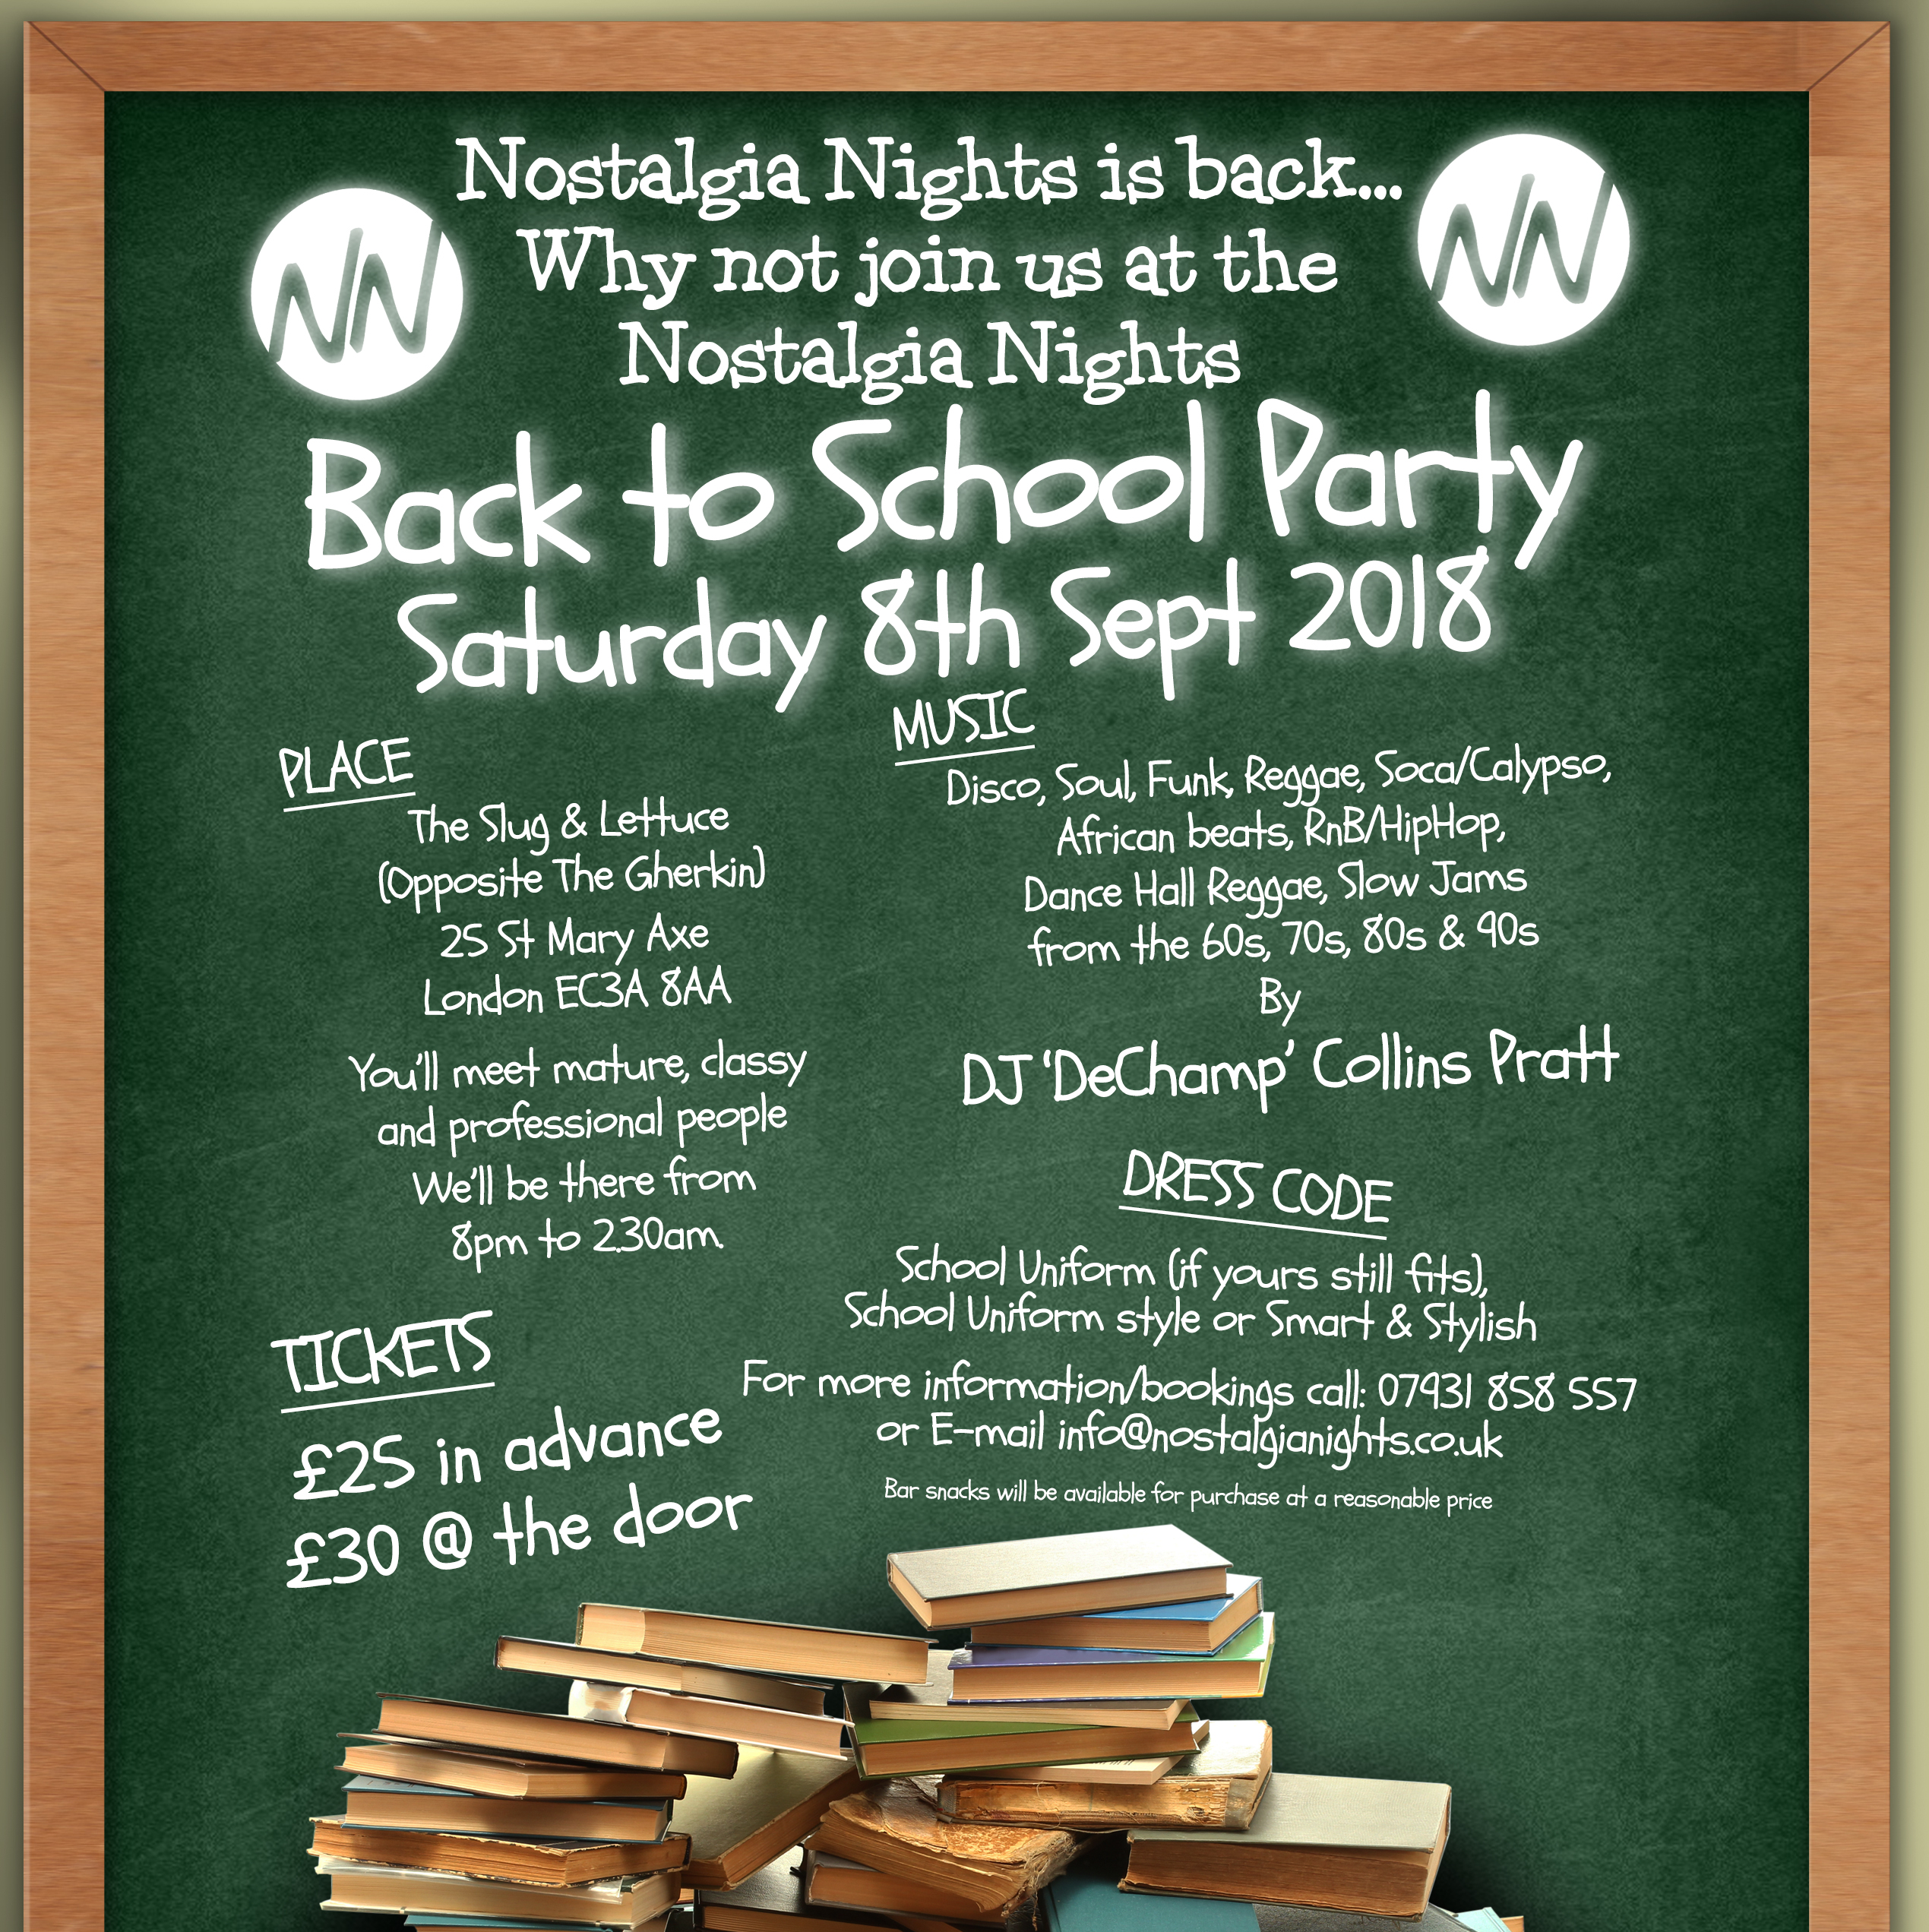 Back To School Party Saturday 8th September 2018